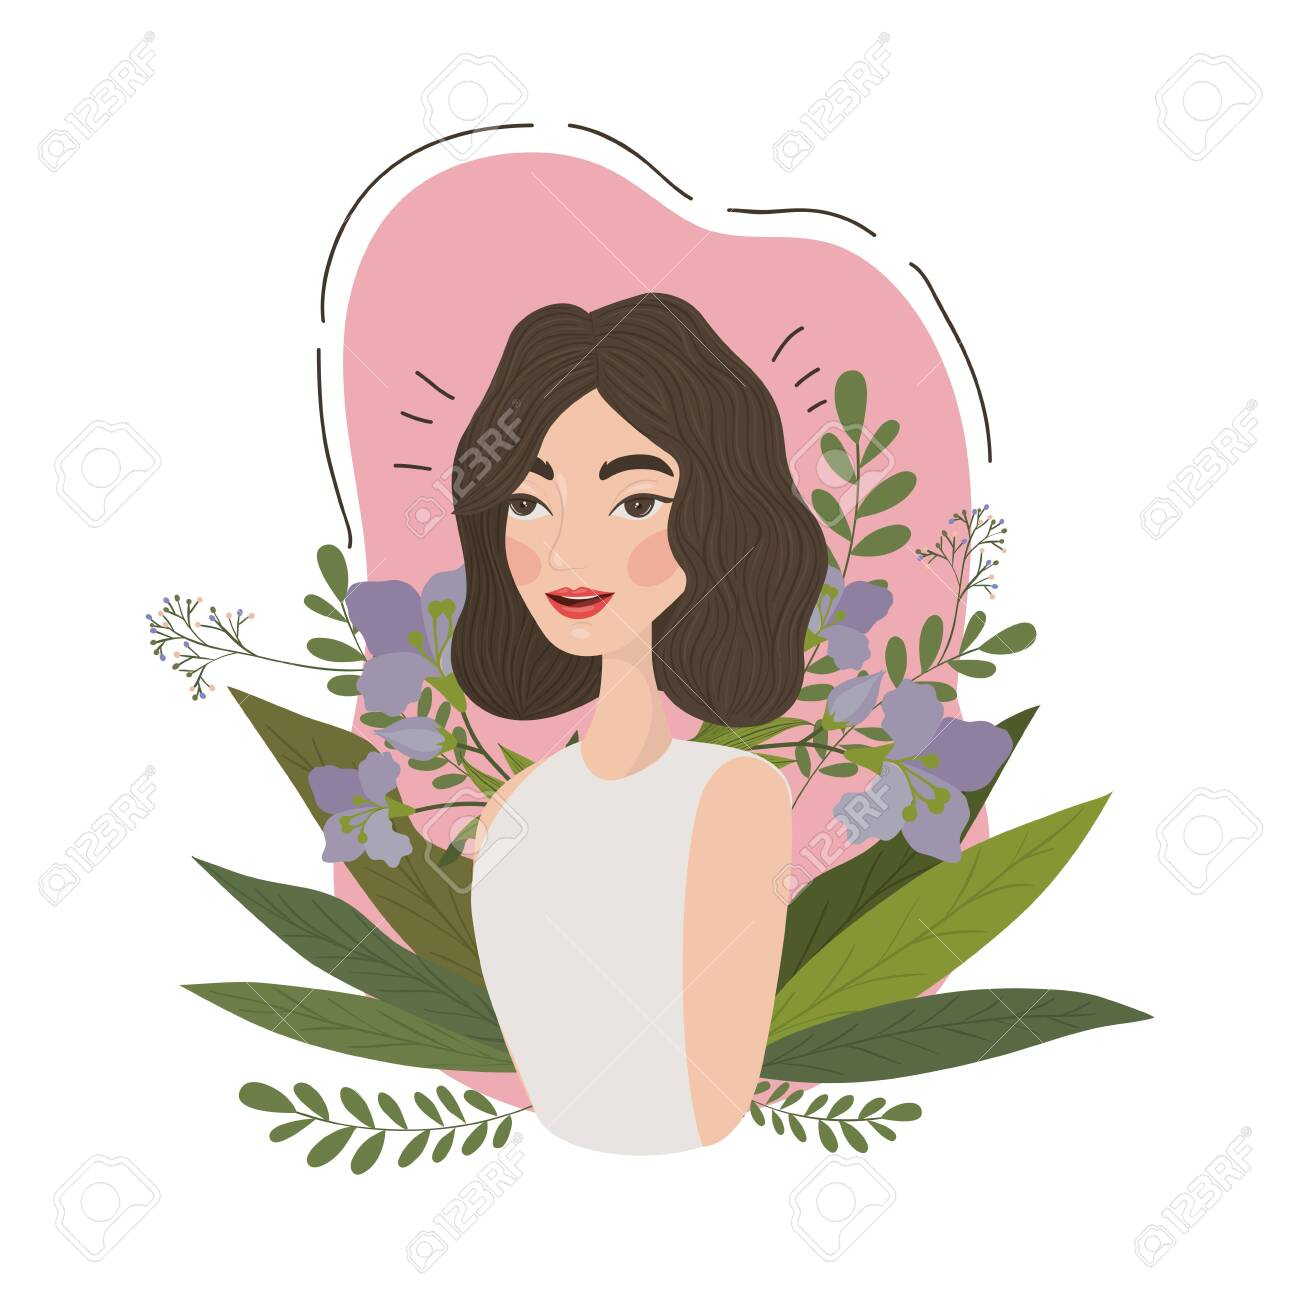 Cute Woman Cartoon Drawing Design Girl Female Person People